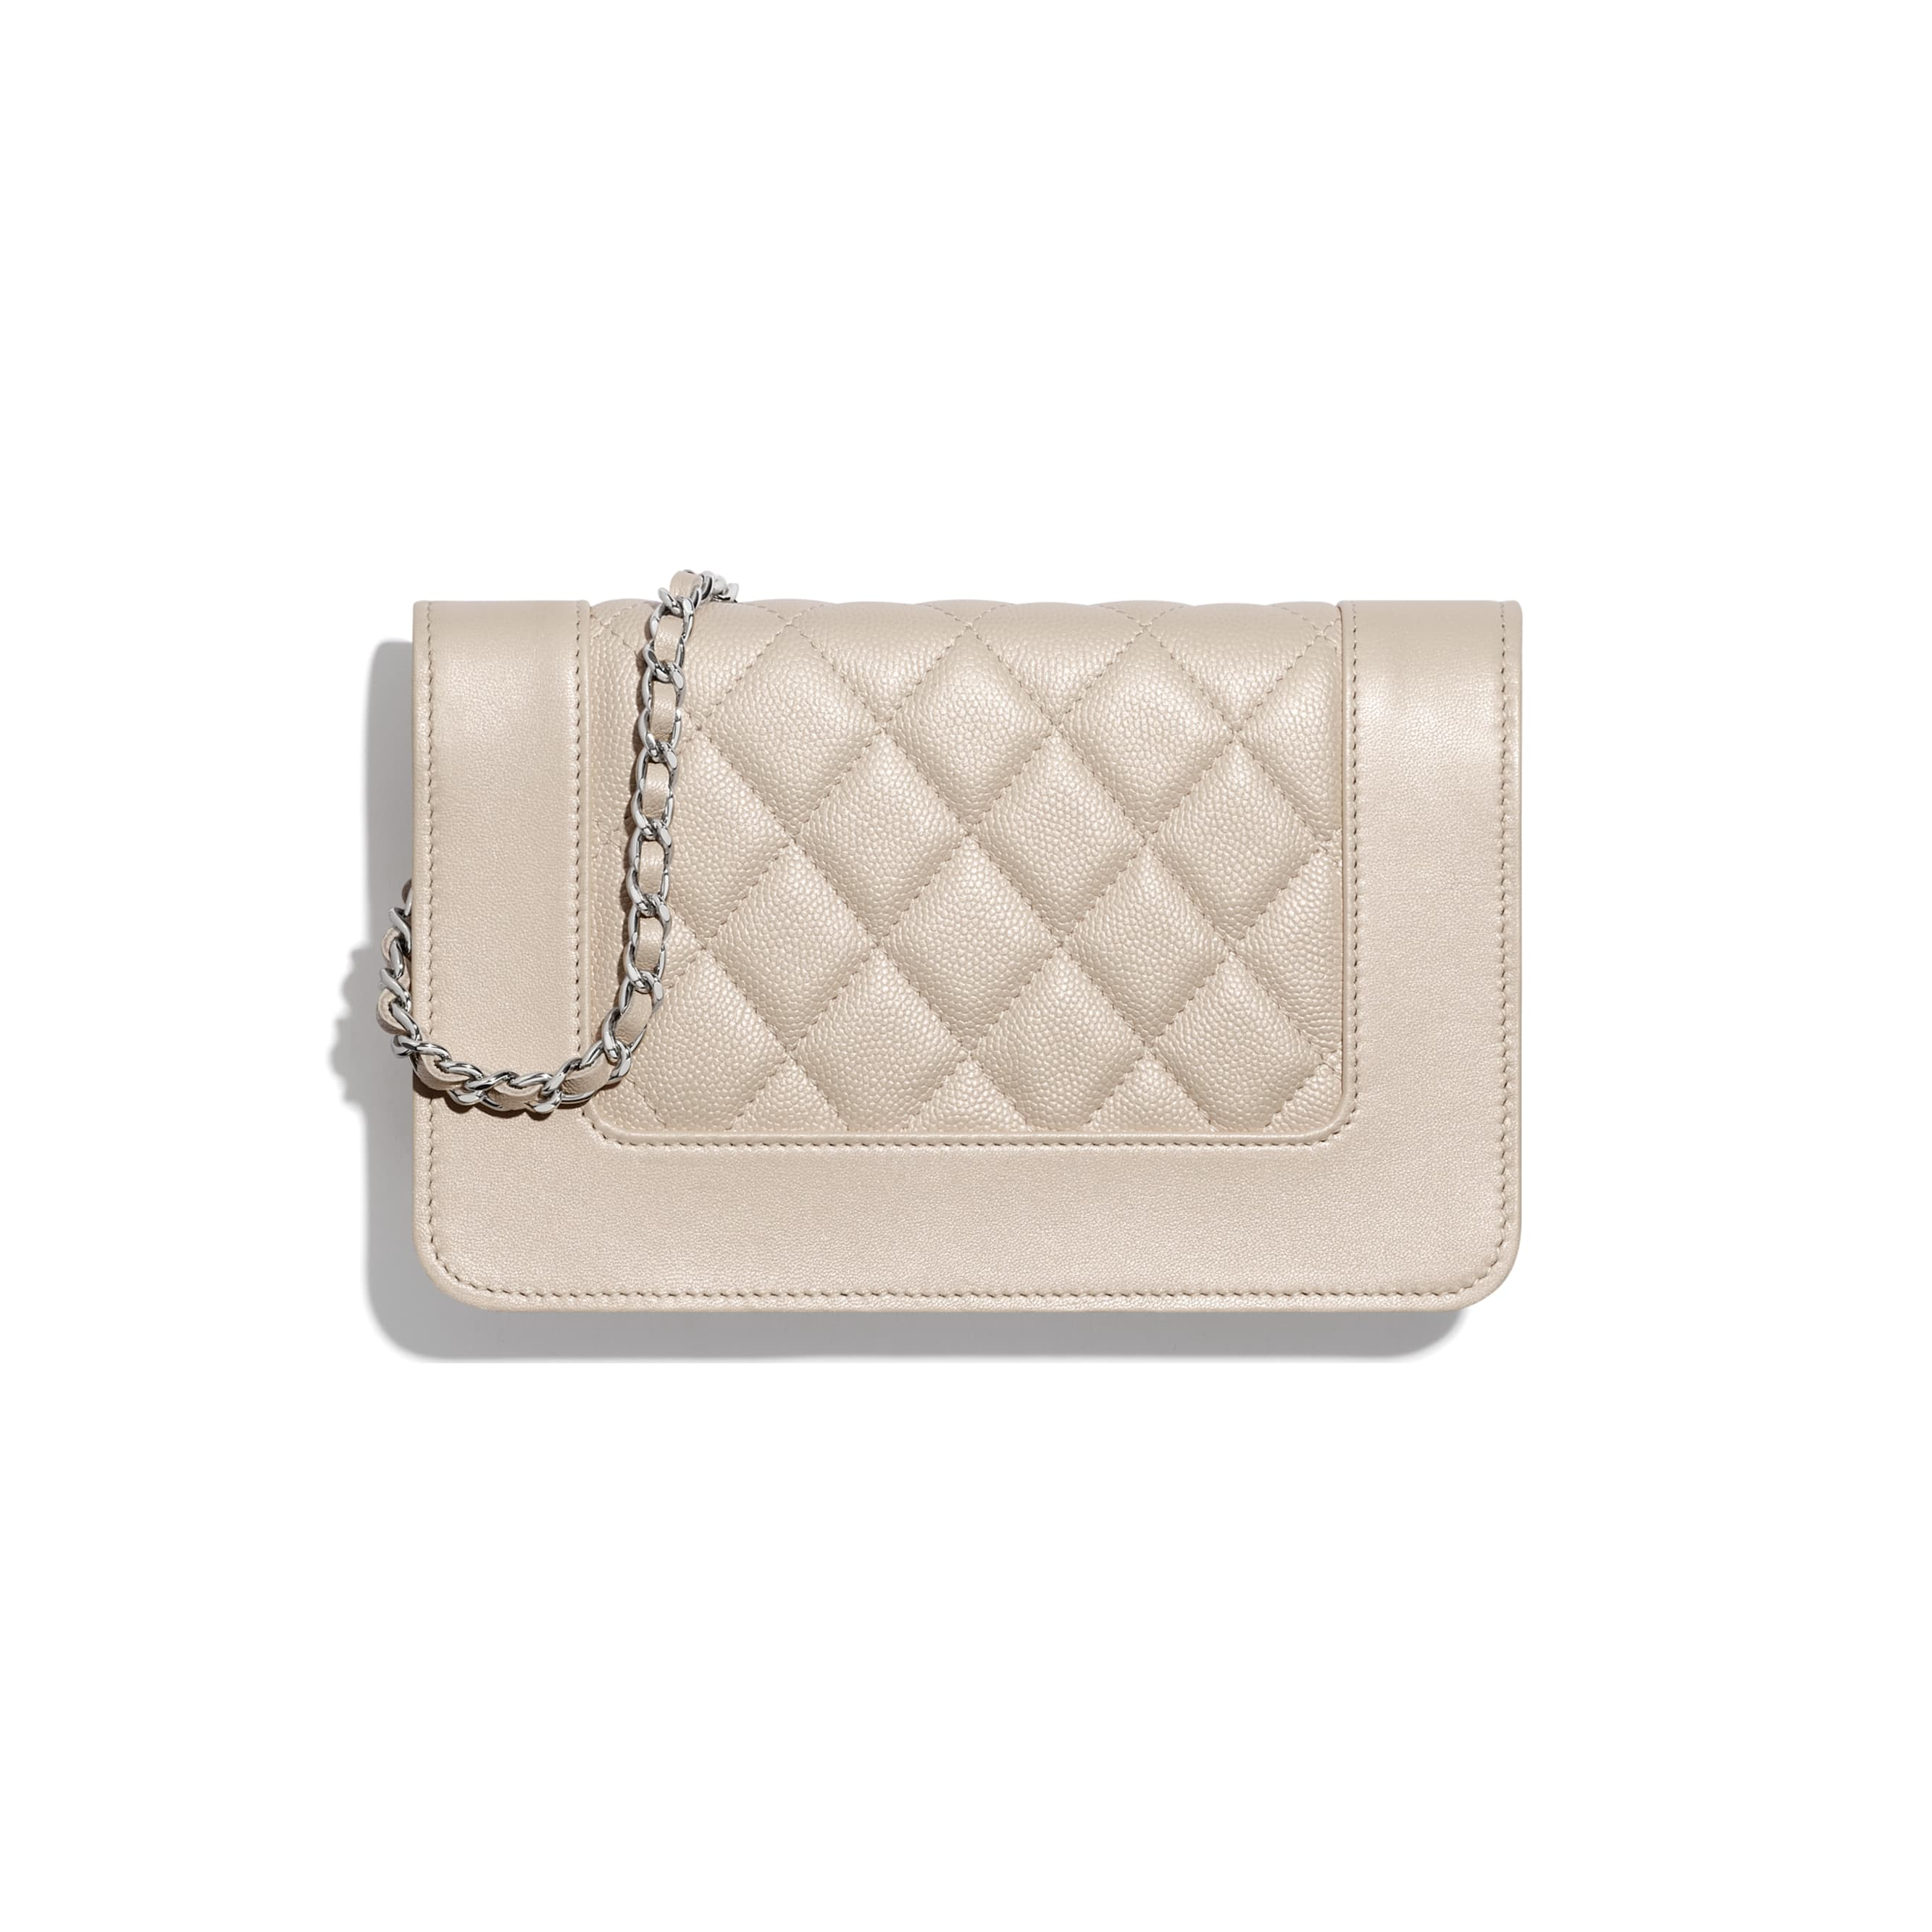 Wallet On Chain - Beige - Grained Calfskin, Calfskin & Silver-Tone Metal - CHANEL - Alternative view - see standard sized version